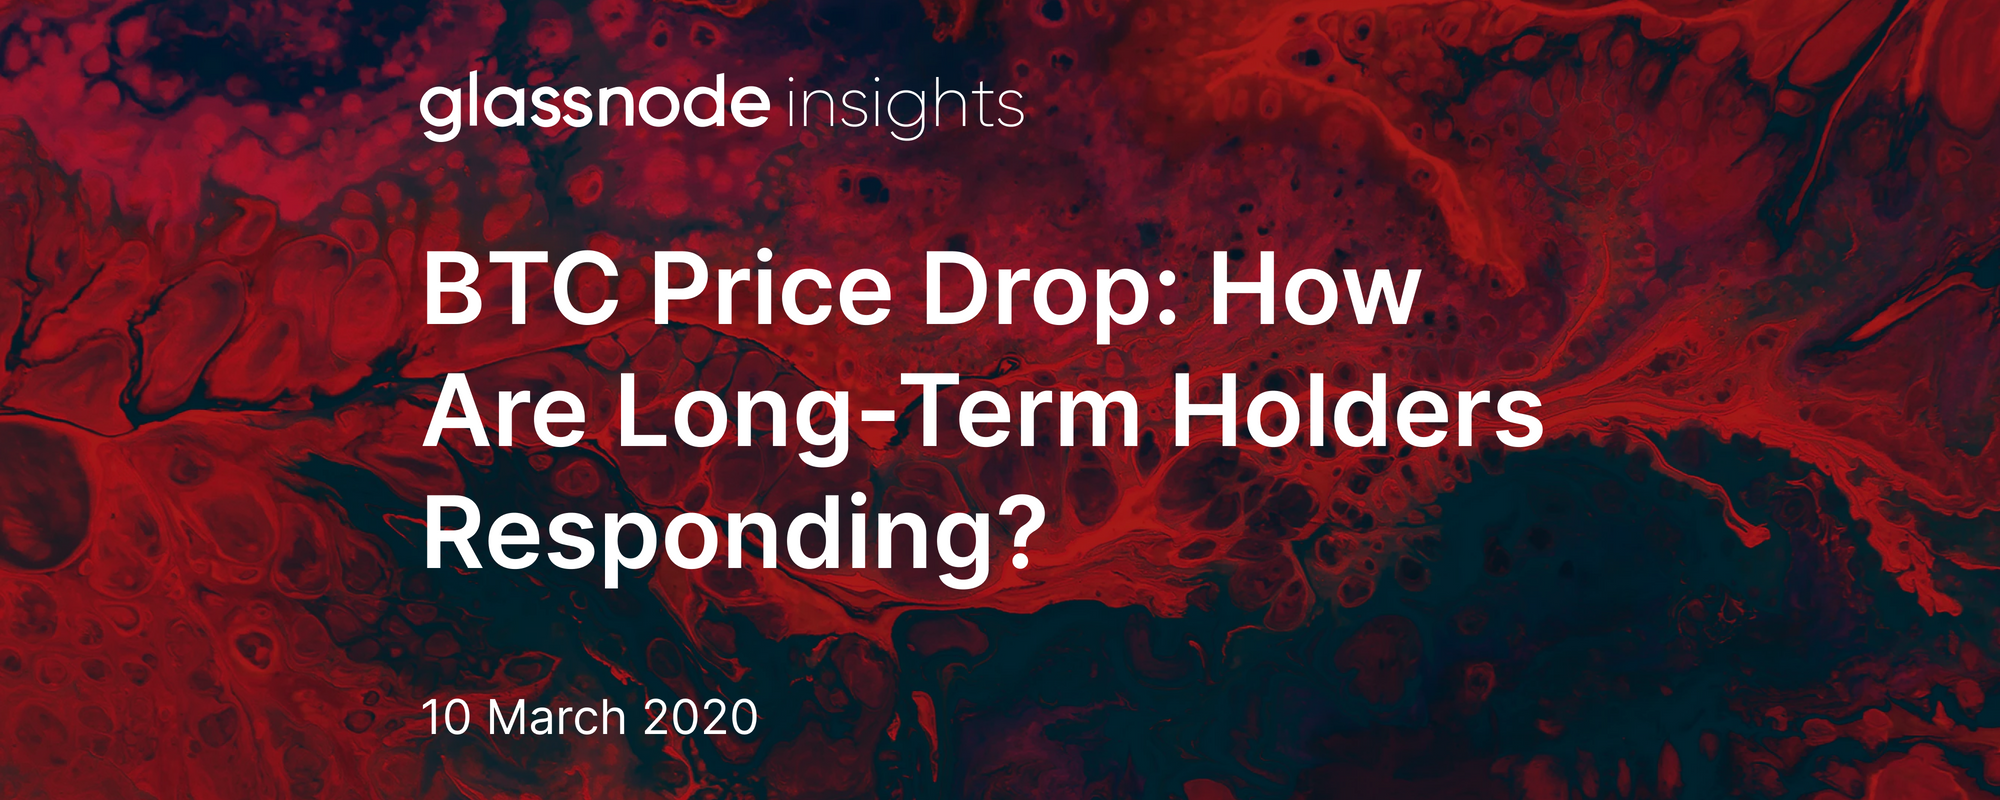 BTC Price Drop: How Are Long-Term Holders Responding?